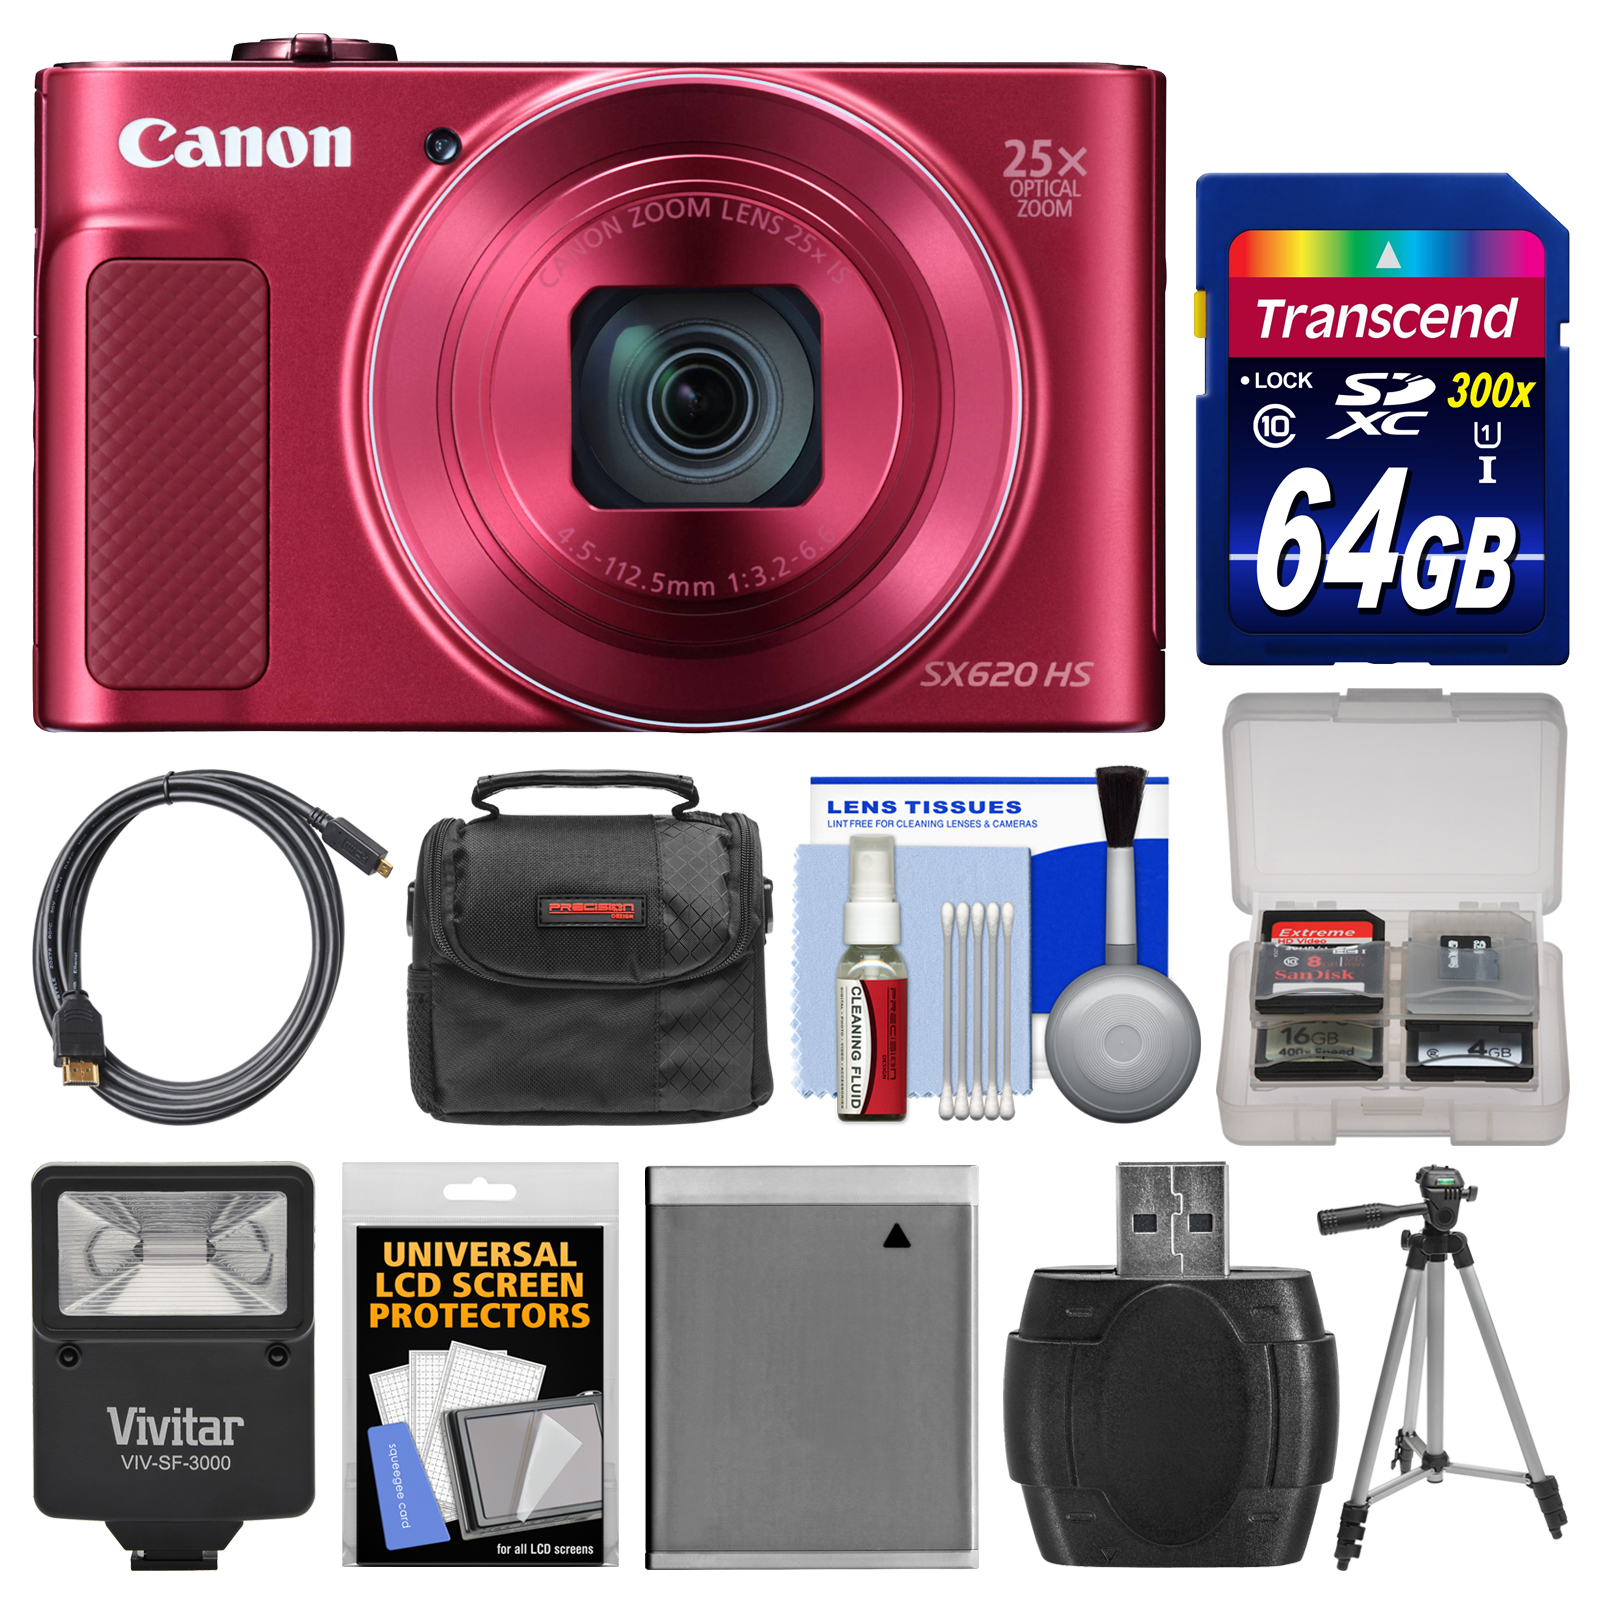 Canon PowerShot SX620 HS Wi-Fi Digital Camera (Silver) with 64GB Card + Case + Flash + Battery + Tripod + HDMI Cable + Kit